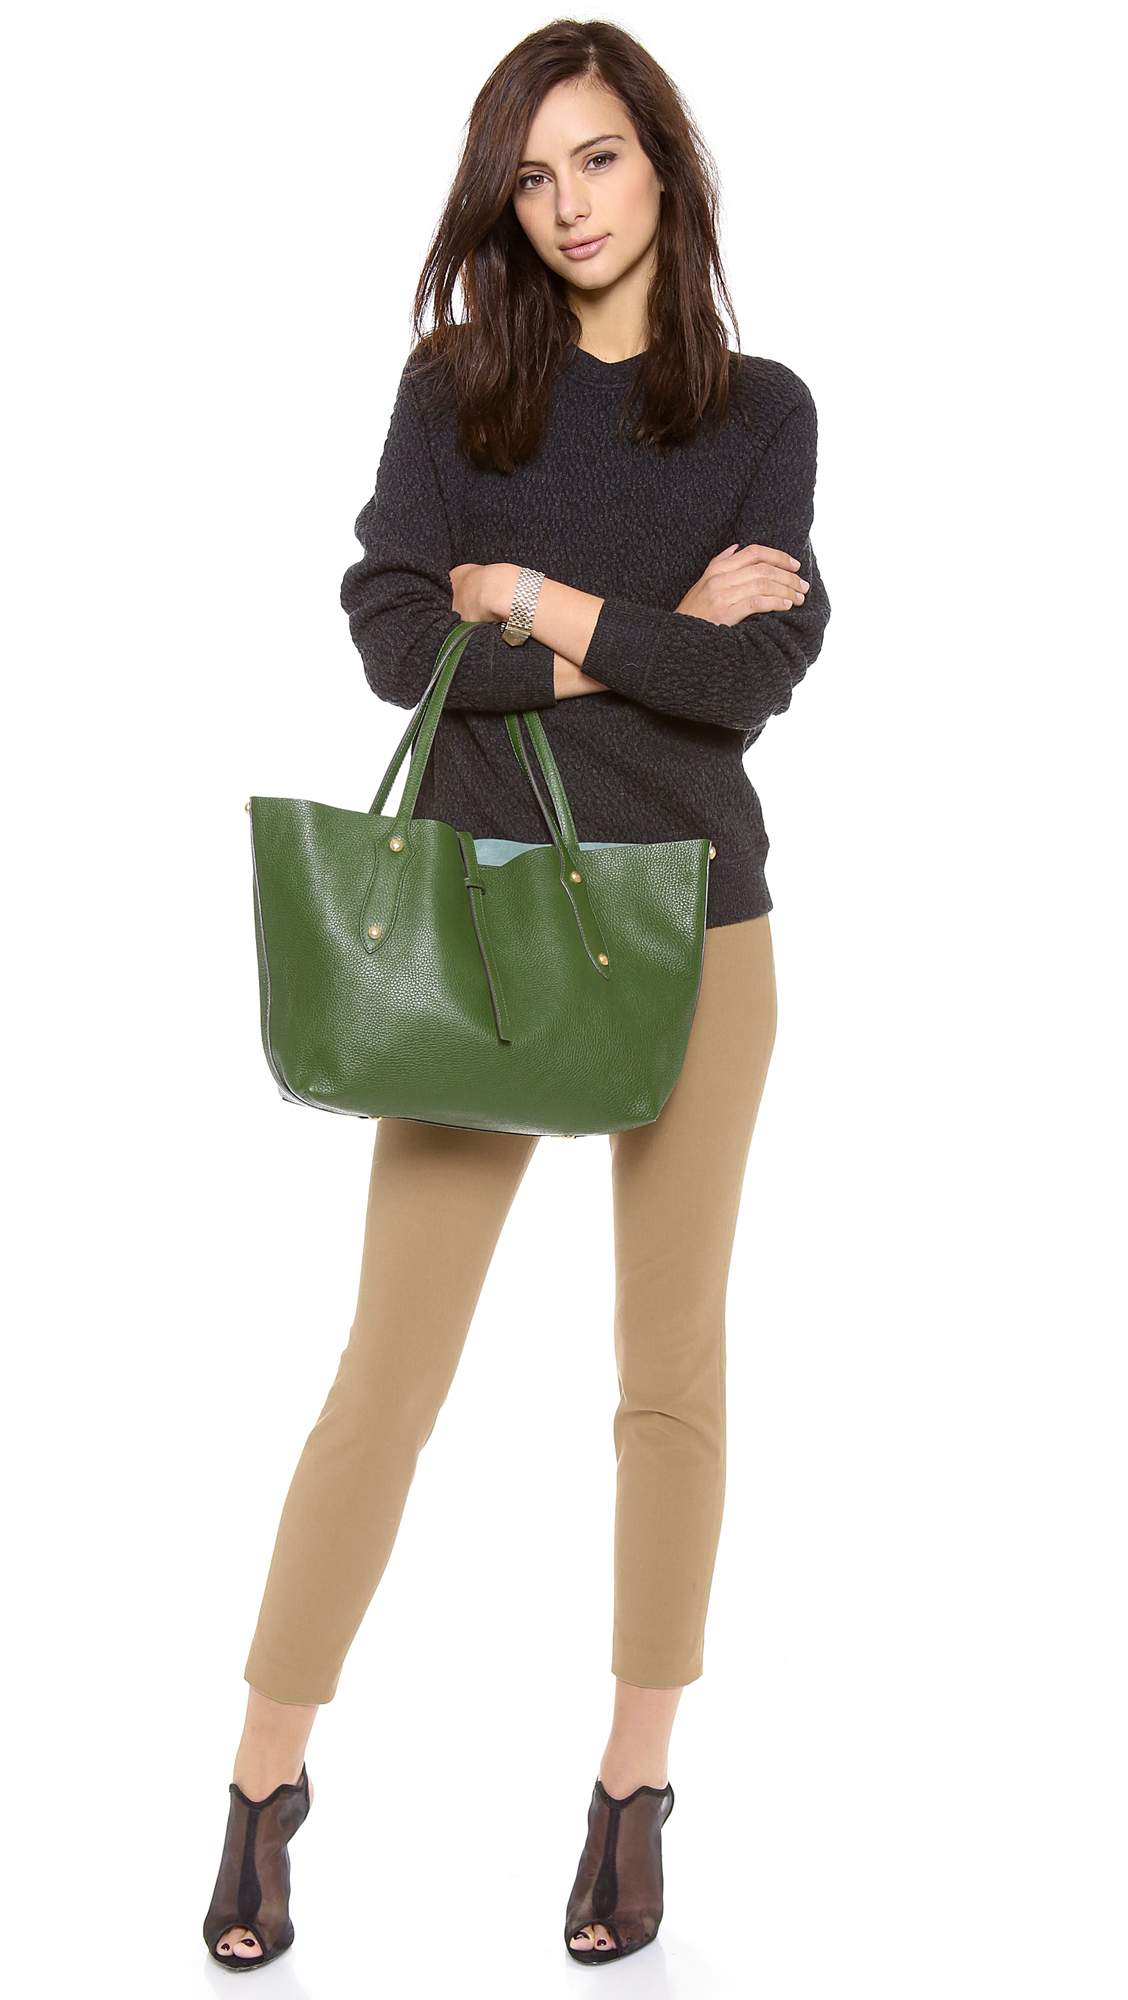 Lyst - Annabel Ingall Small Isabella Tote in Green aba2d095e1016